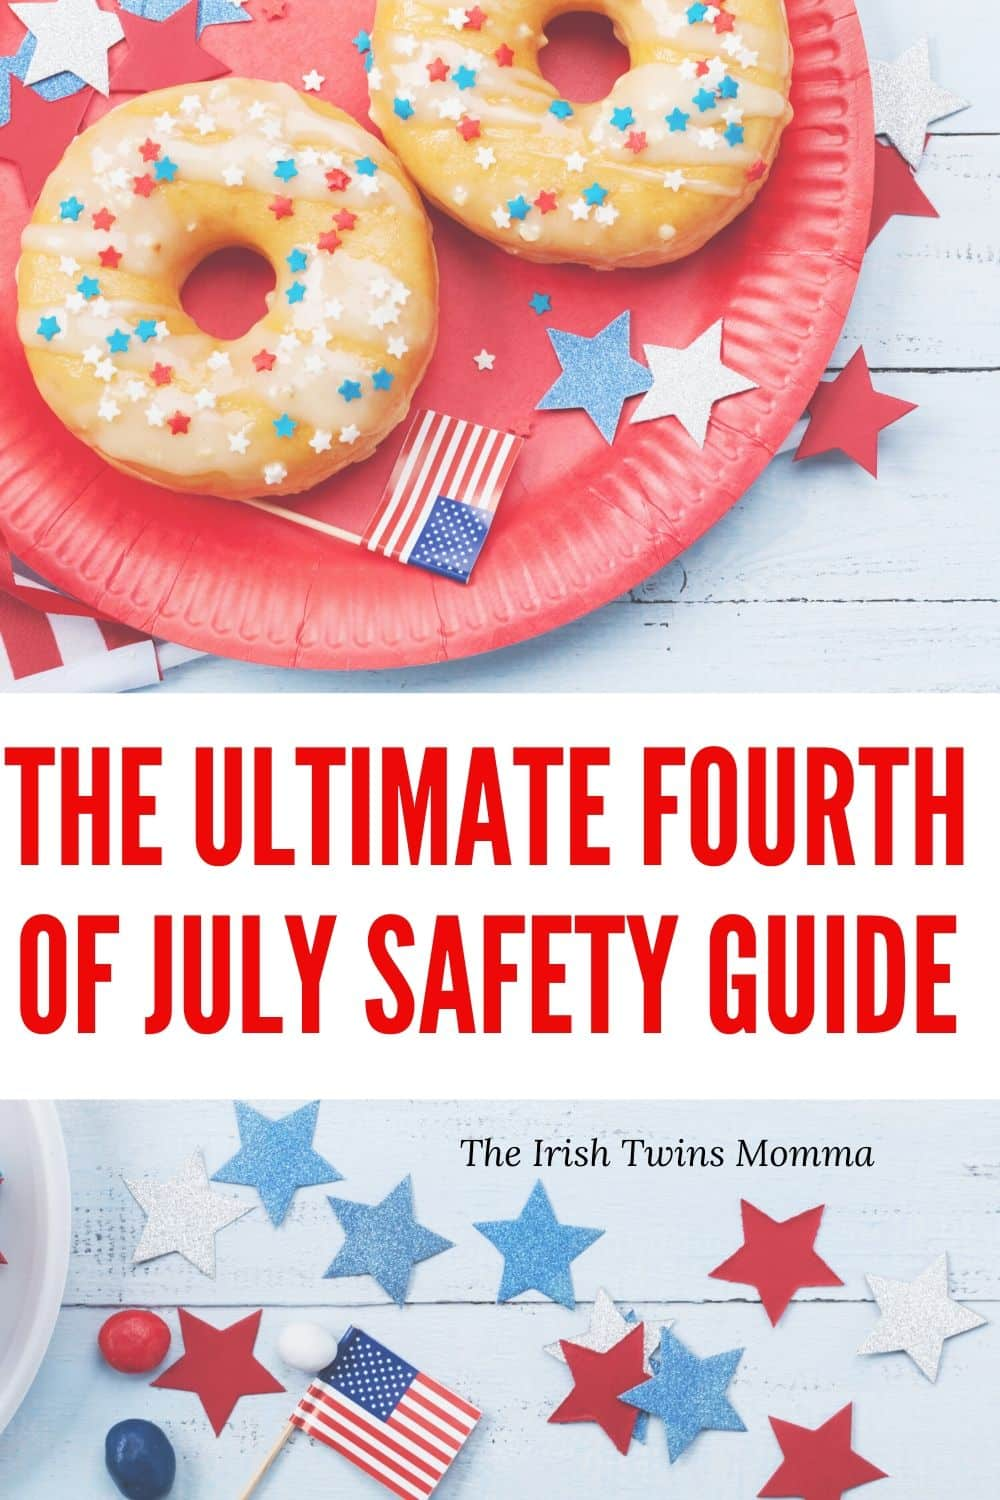 When you start thinking about how you're going to celebrate the Fourth of July with your loved ones, it probably doesn't come to mind that it's widely considered the most dangerous U.S. holiday. That doesn't mean it can't be a fun, relaxing time, but keeping festivities safe and sound will require some thought and discipline for your entire family. via @irishtwinsmom11